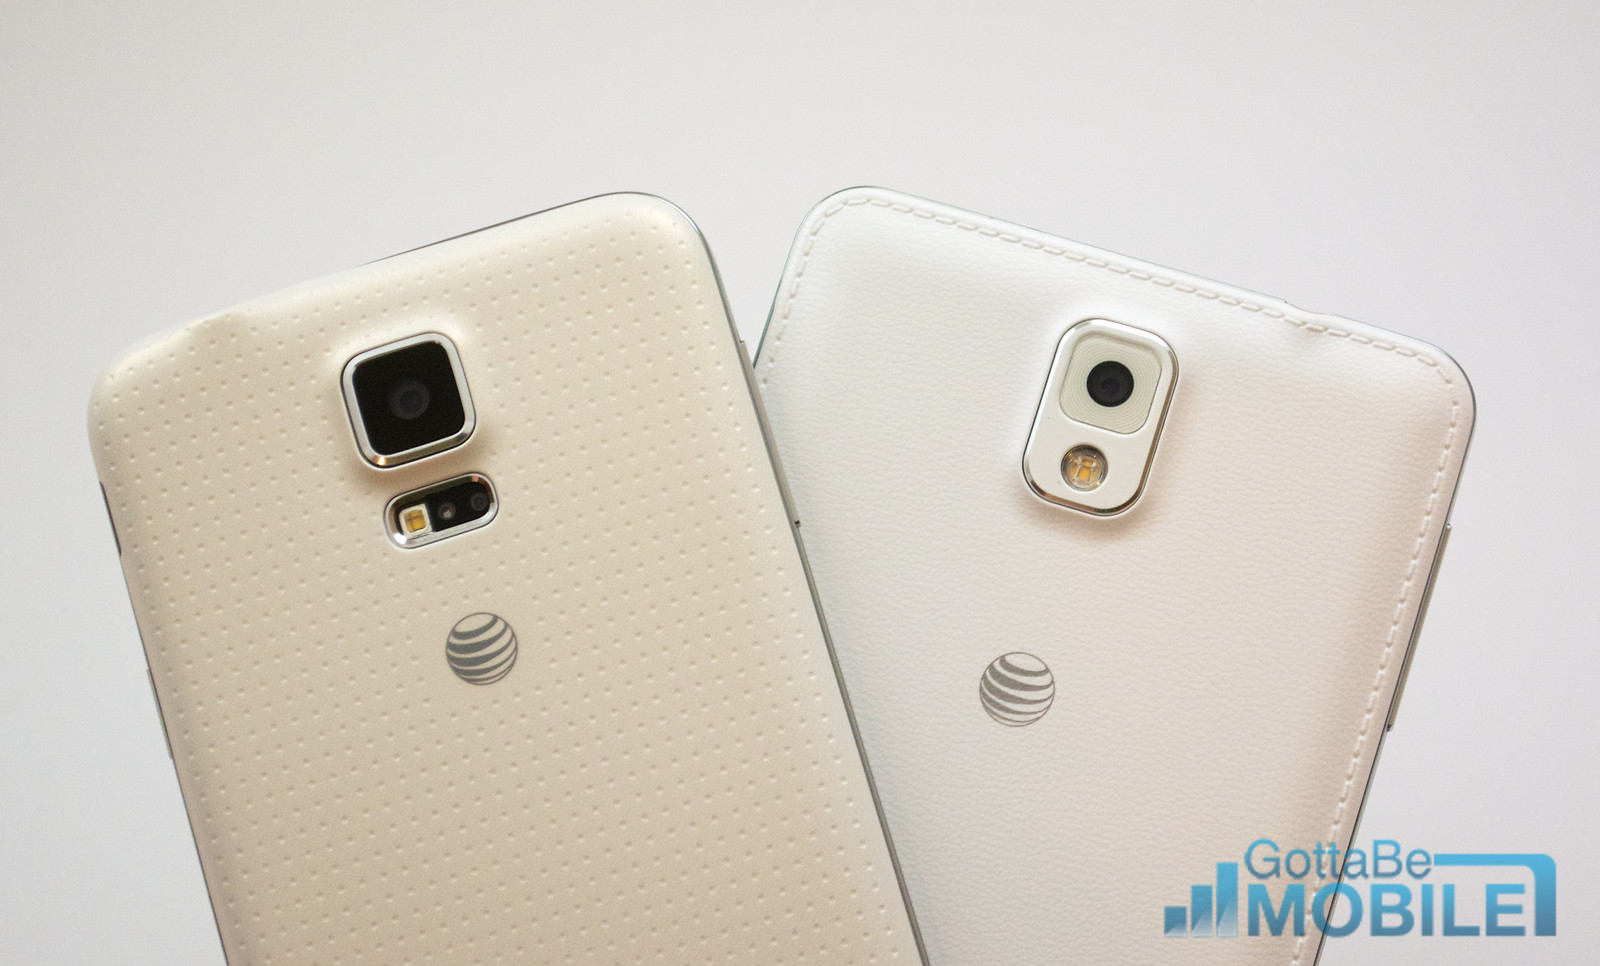 8 Common Galaxy Note 3 Problems & How to Fix Them